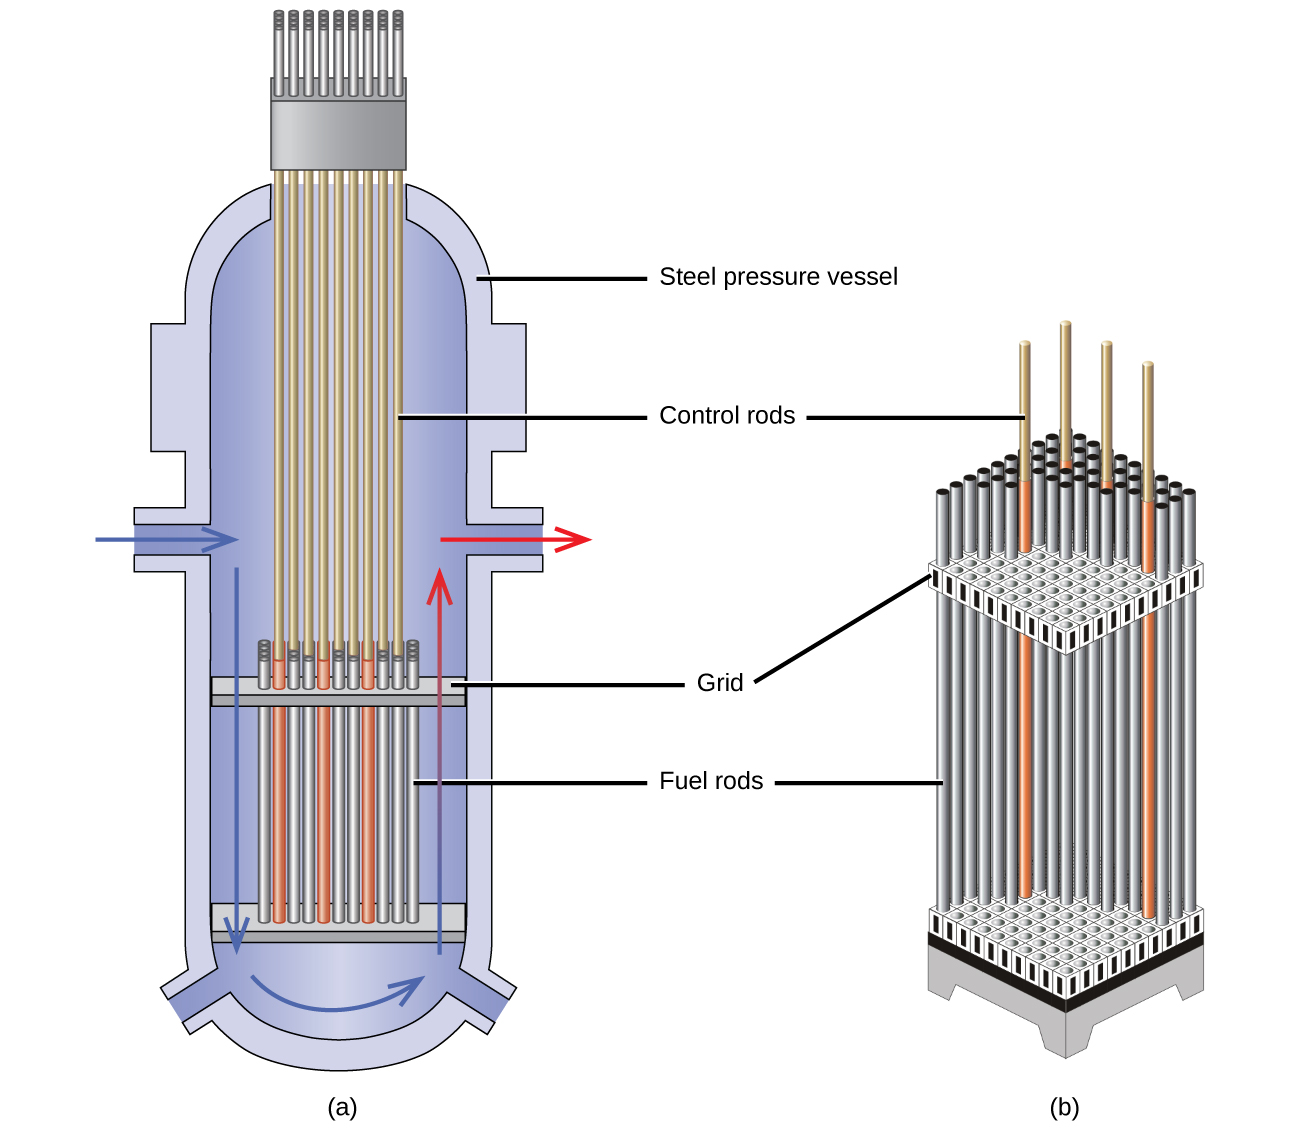 ... Reactor Core Diagram Transmutation and nuclear energy - openstax cnx